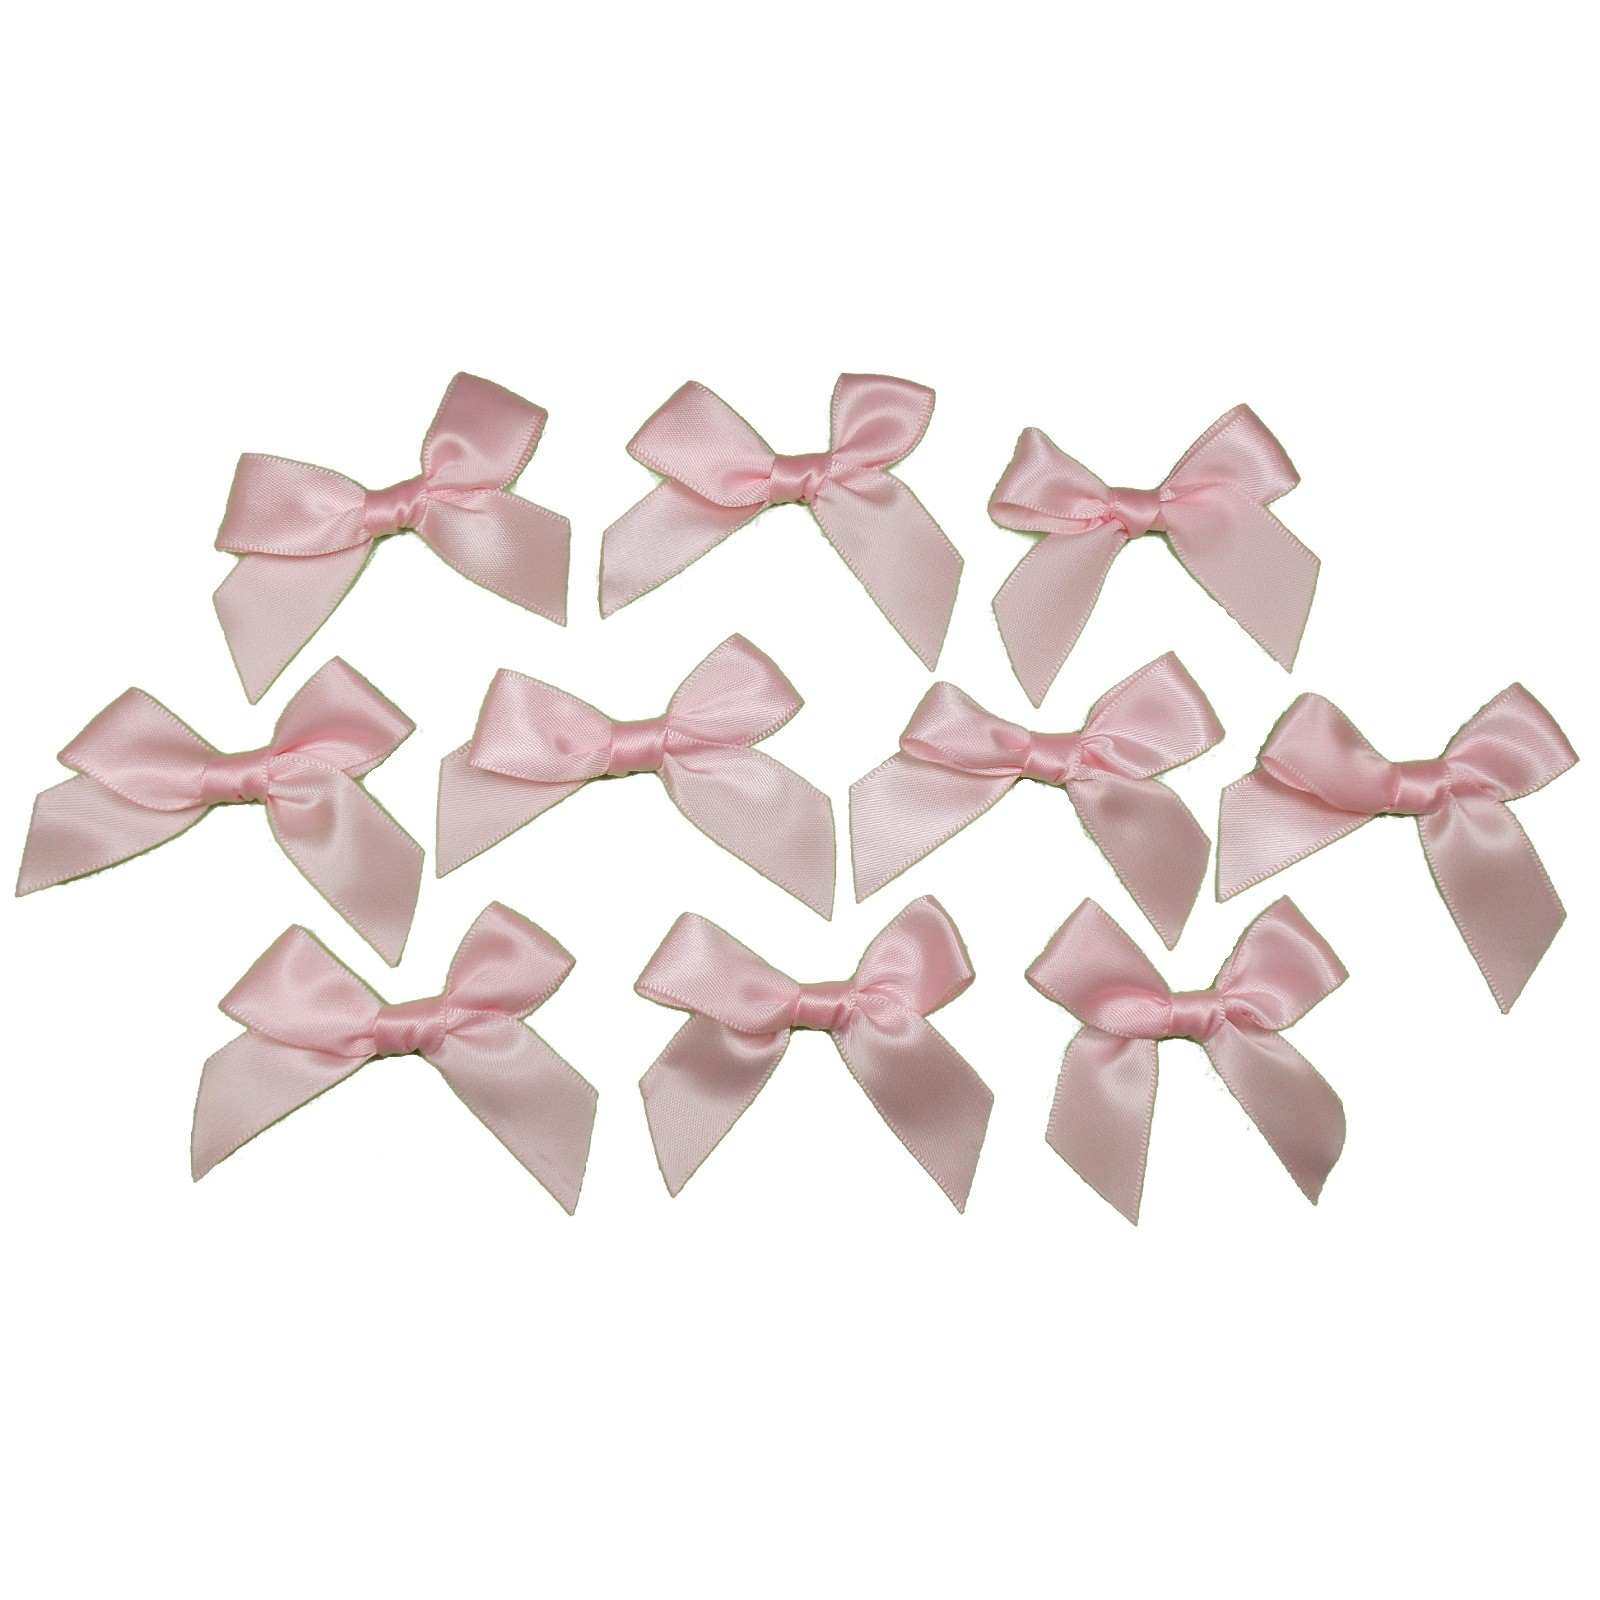 Satin Ribbon Bows approx 5.5cm wide Pale Pink Pack of 10